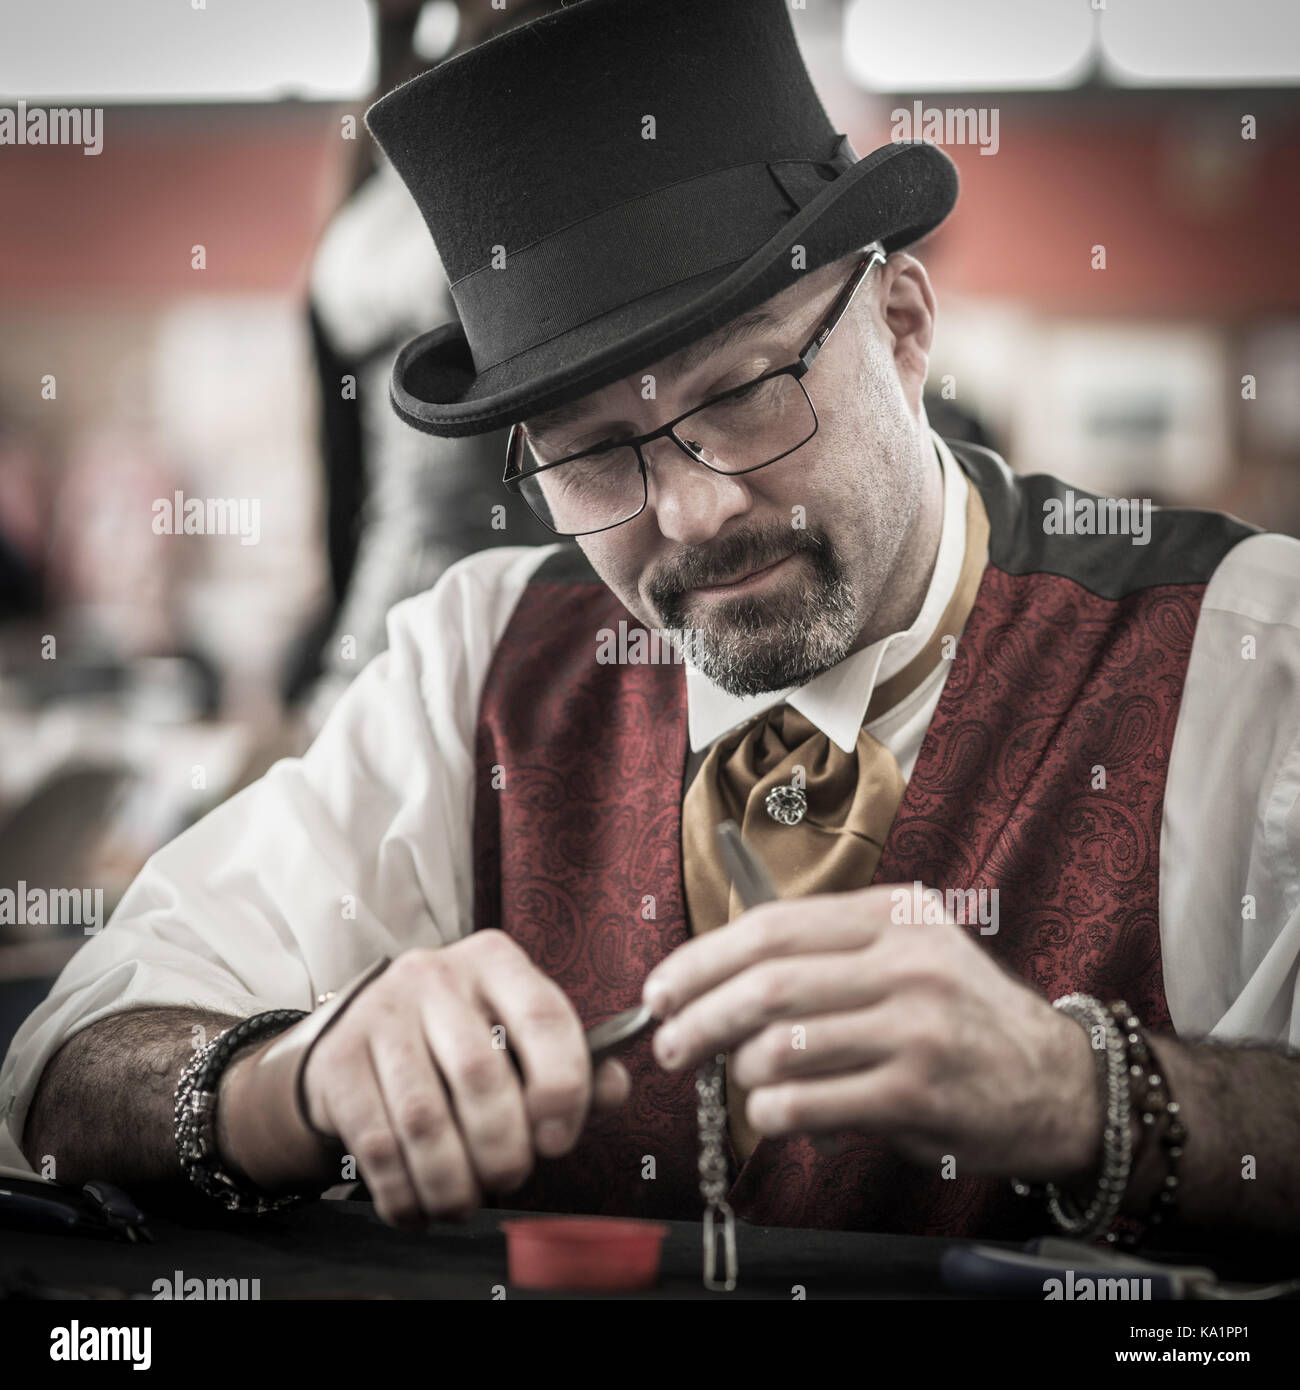 Cosplay Steampunk character - Stock Image